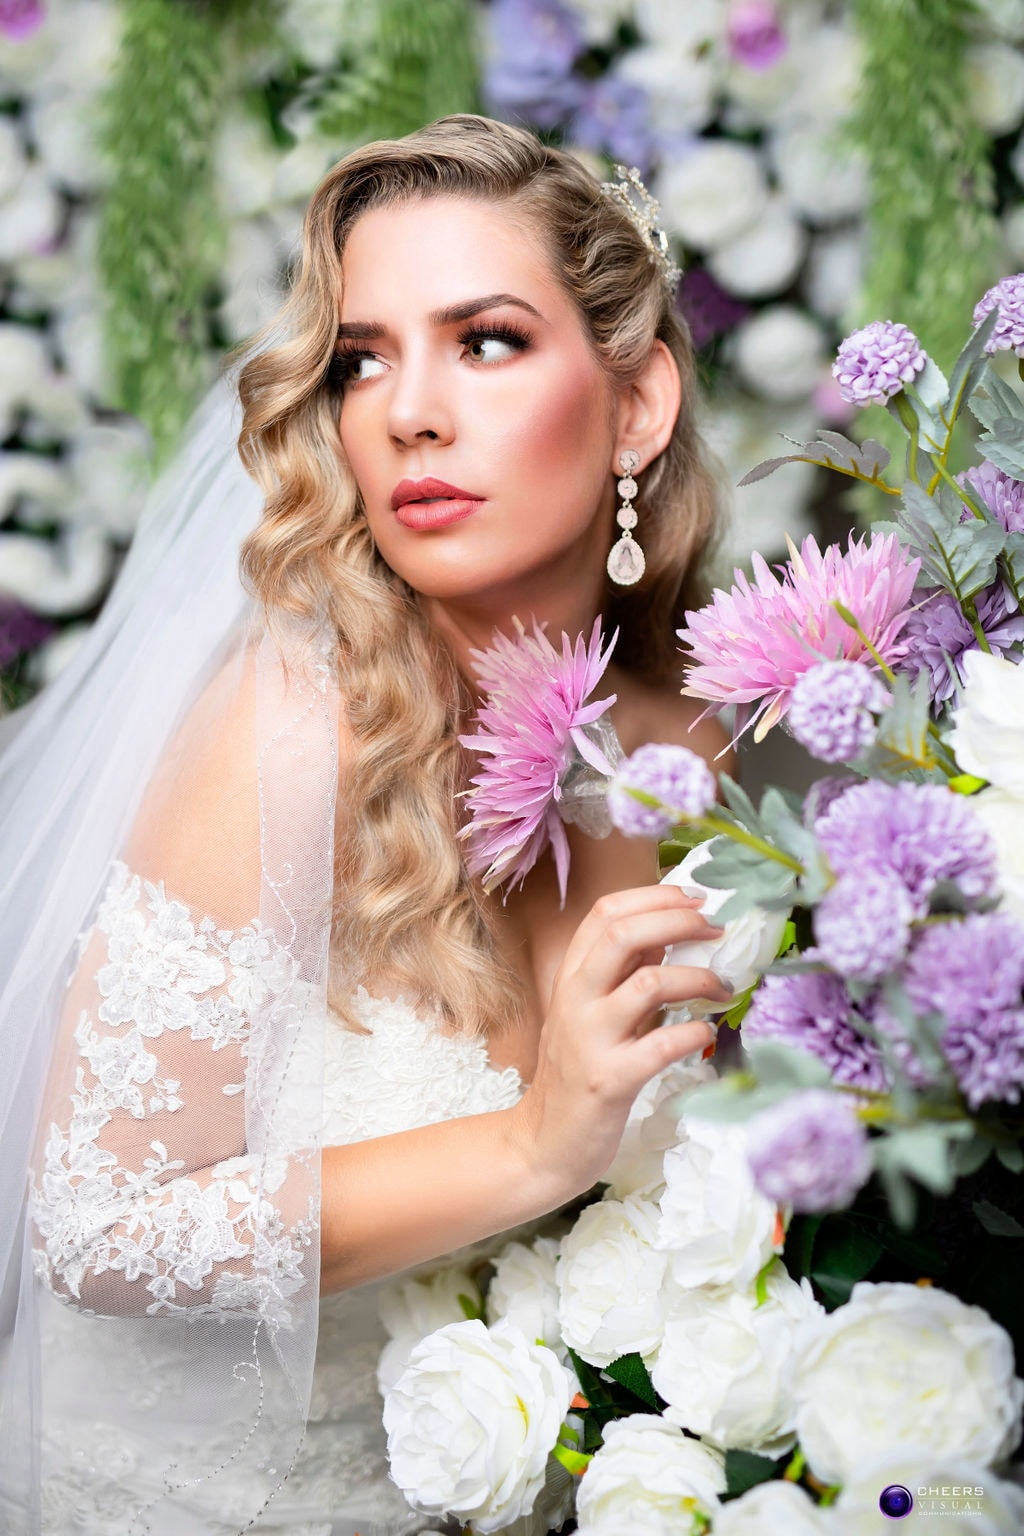 Cheers Visual Communications Launches Photo Studio with Elegant Bridal Styled Shoot, Photography by Cheers Visual Communications for Destination Wedding Blog Adriana Weddings